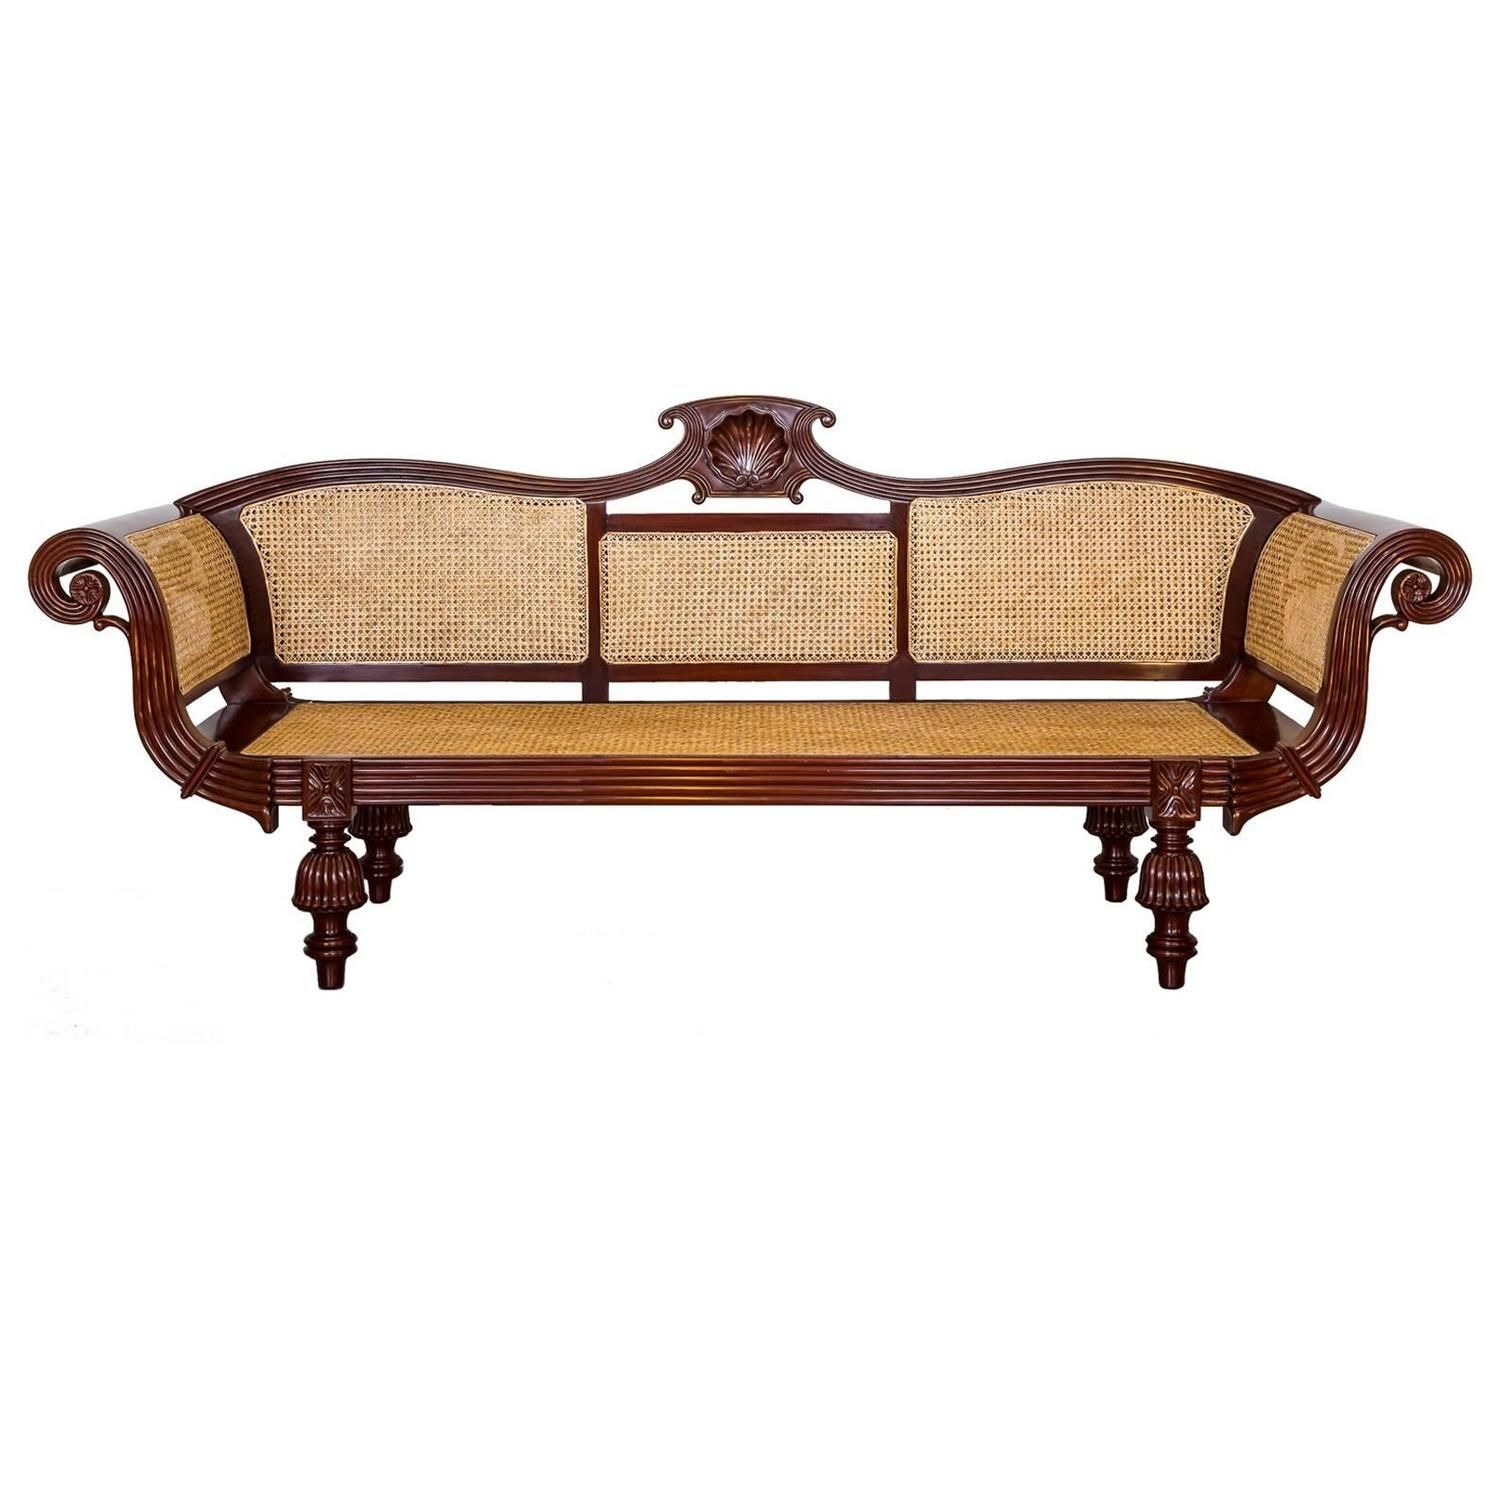 anglo indian or british colonial mahogany sofa furniture indian and british. Black Bedroom Furniture Sets. Home Design Ideas